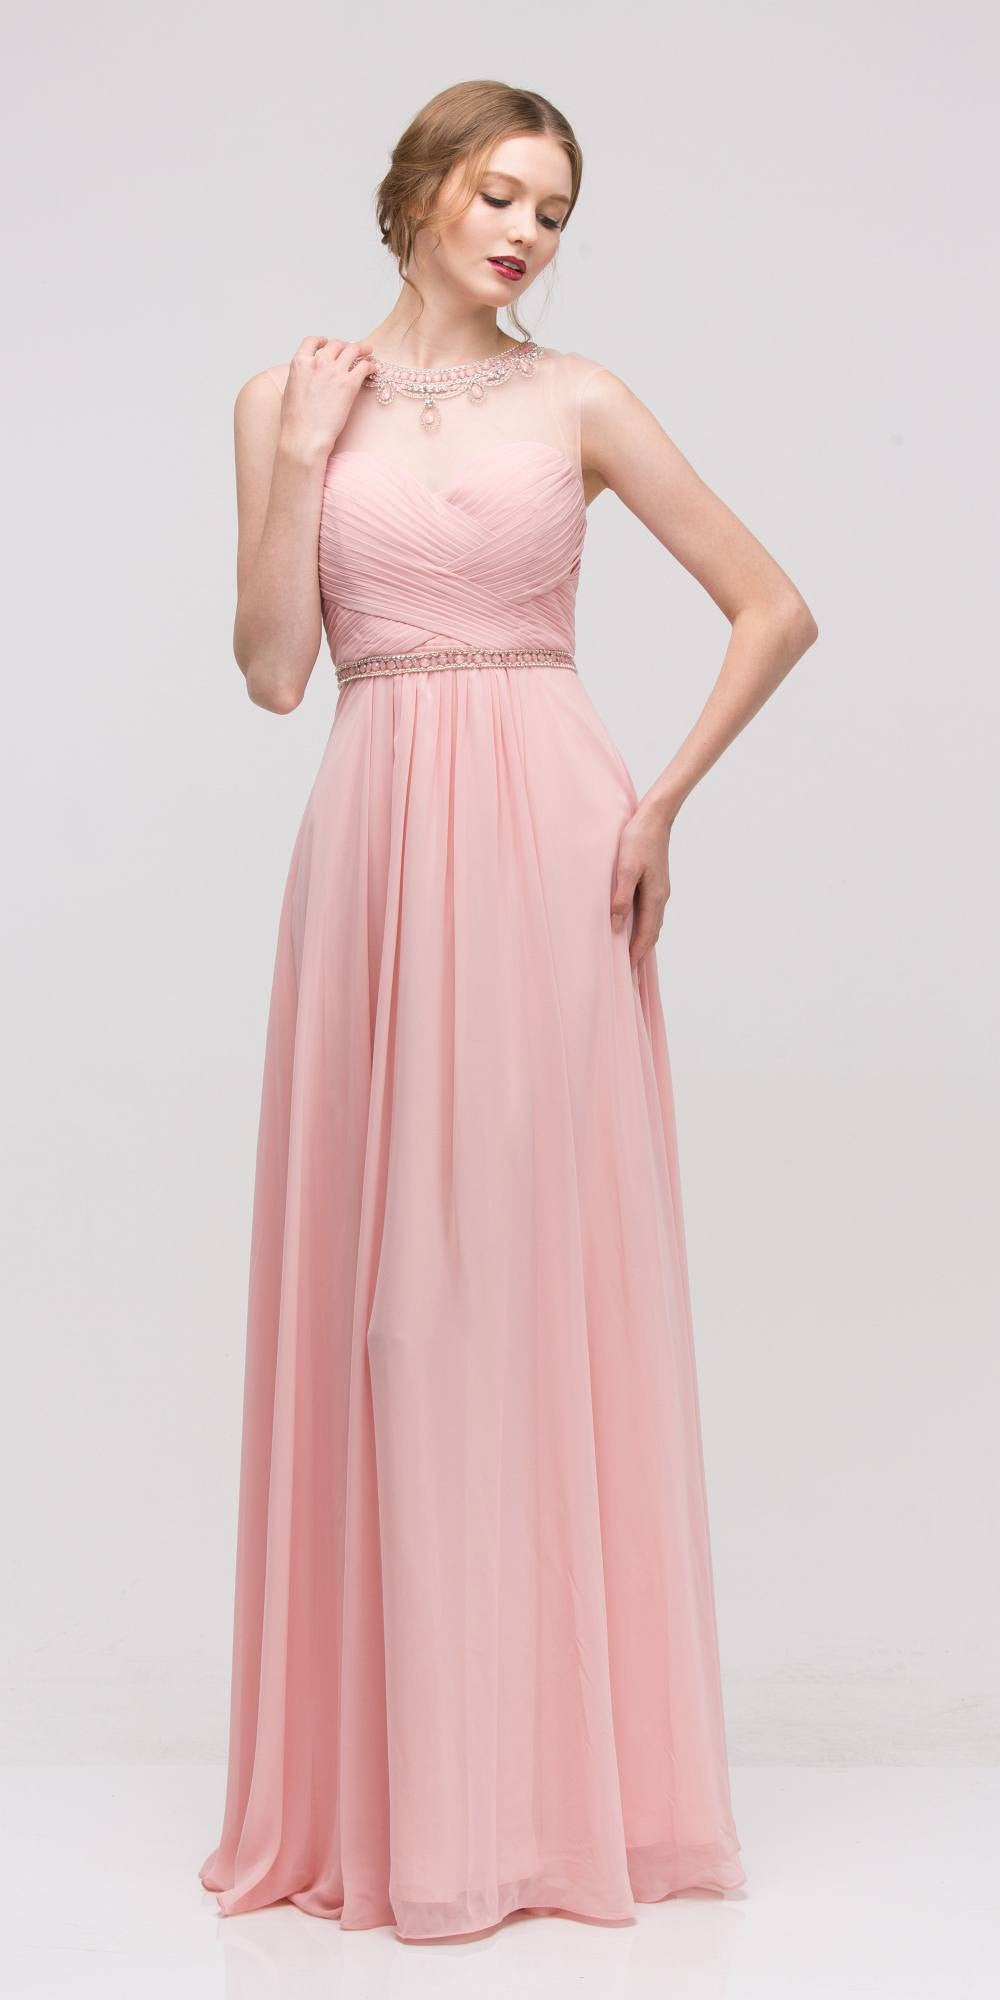 Dusty Pink Sleeveless A-line Prom Gown Illusion Beaded Neckline